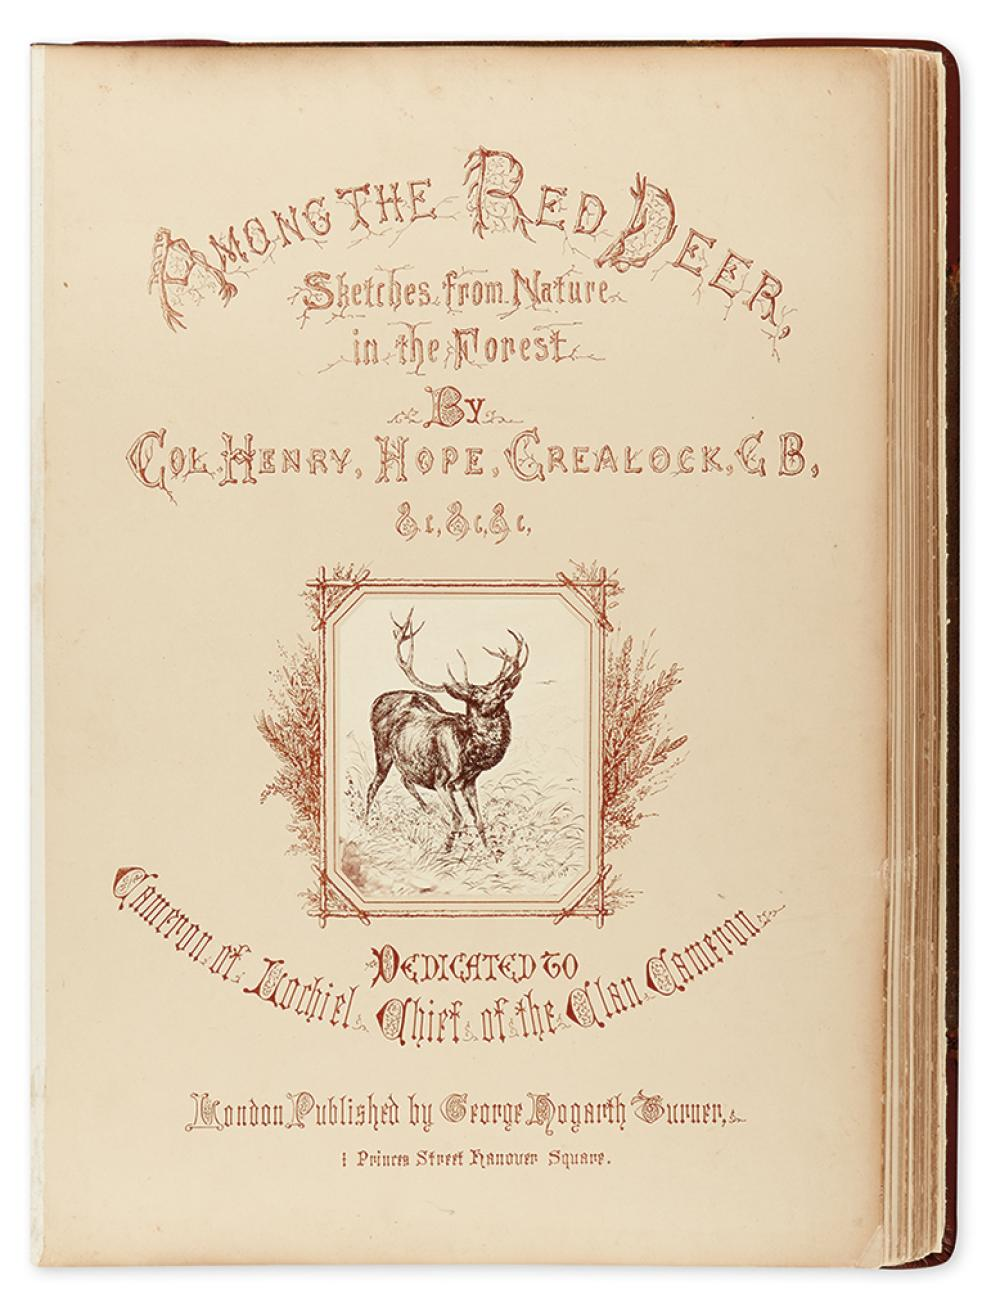 (HUNTING.) Crealock, Henry Hope. Among the Red Deer, Sketches from Nature in the Forest.